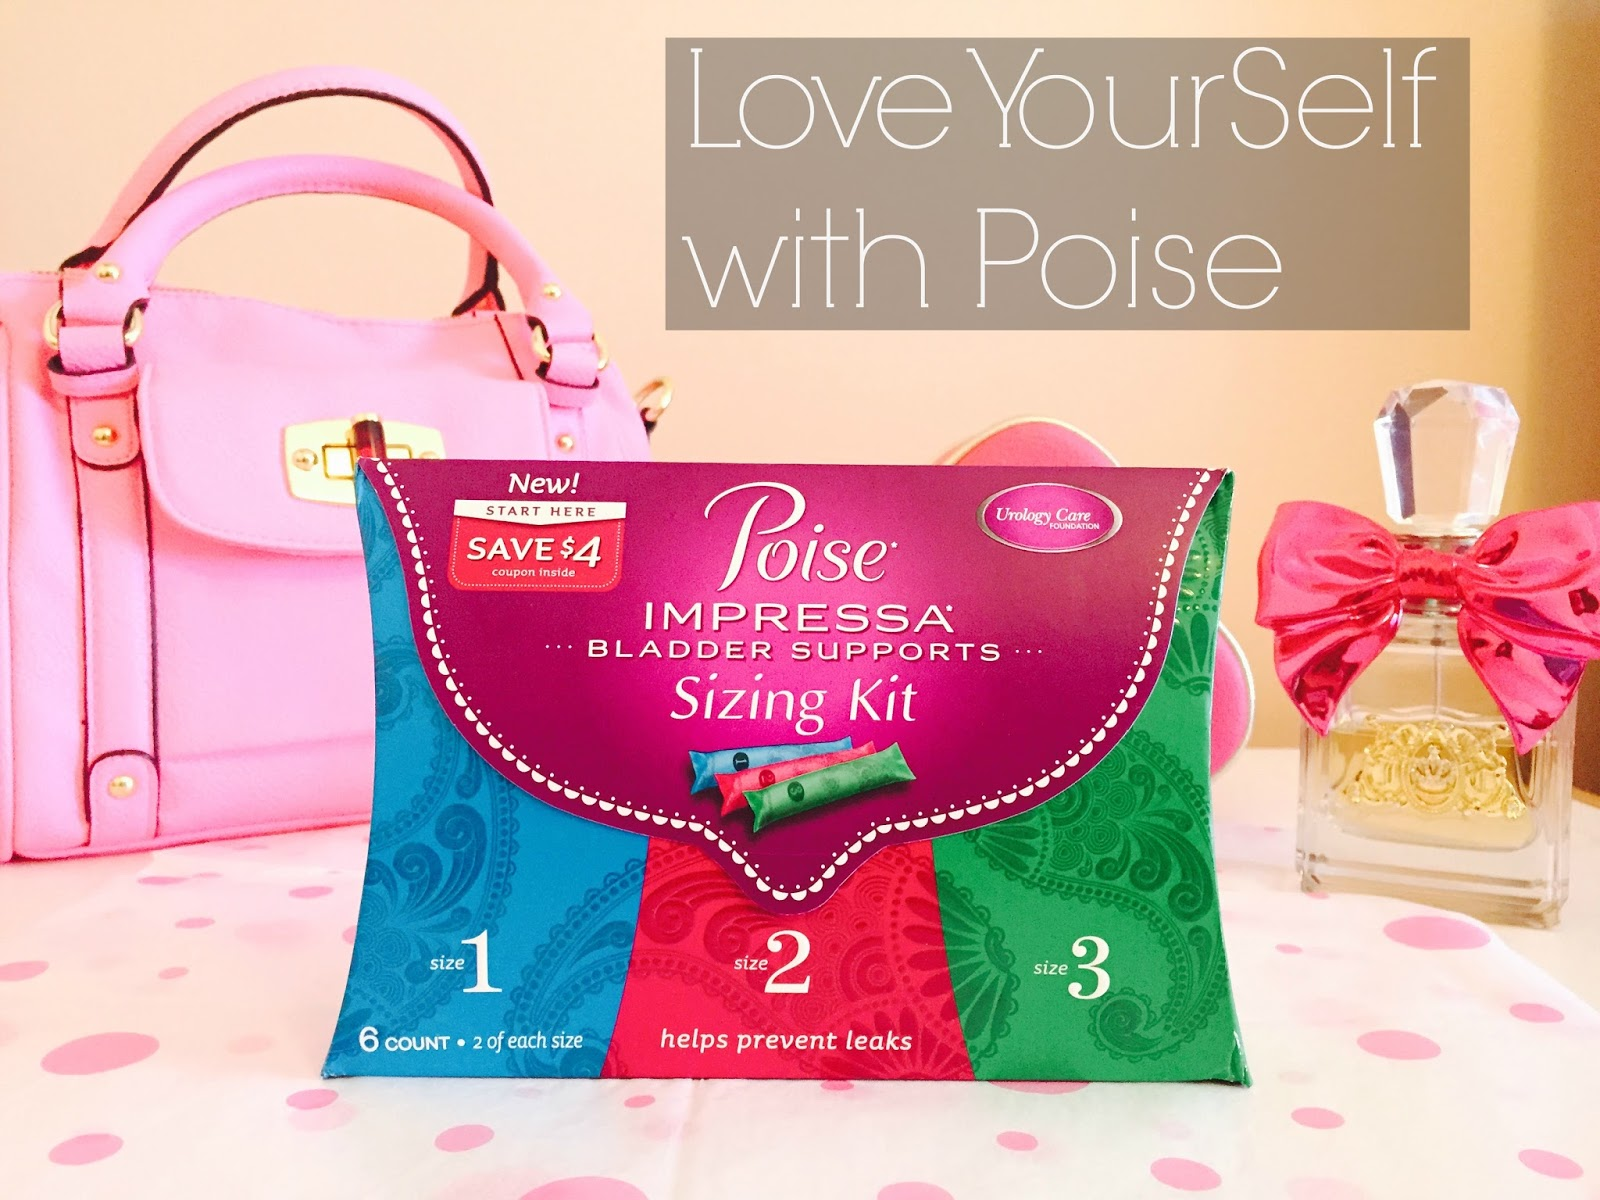 poise, poise impressa, poise stop leakage, bladder support, poise impressa bladder support,